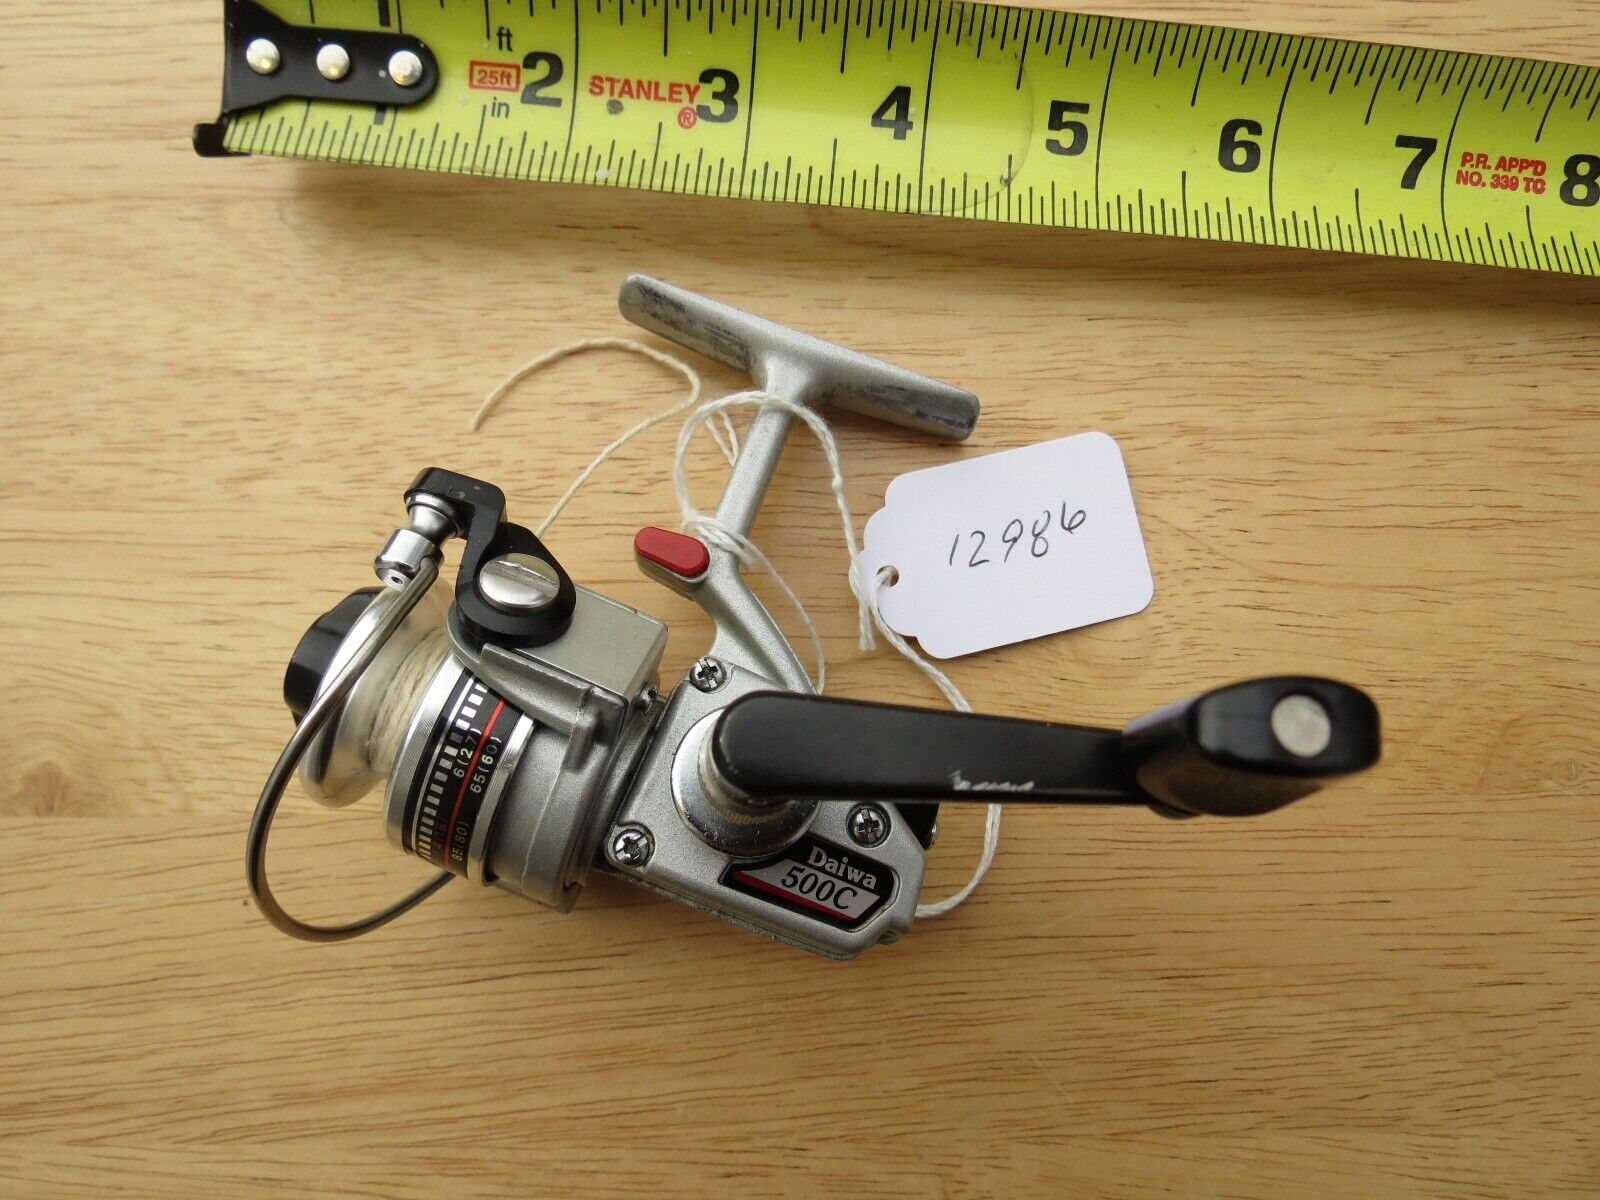 Daiwa 500c  trout fishing reel made in Japan (lot)  cheap and fashion